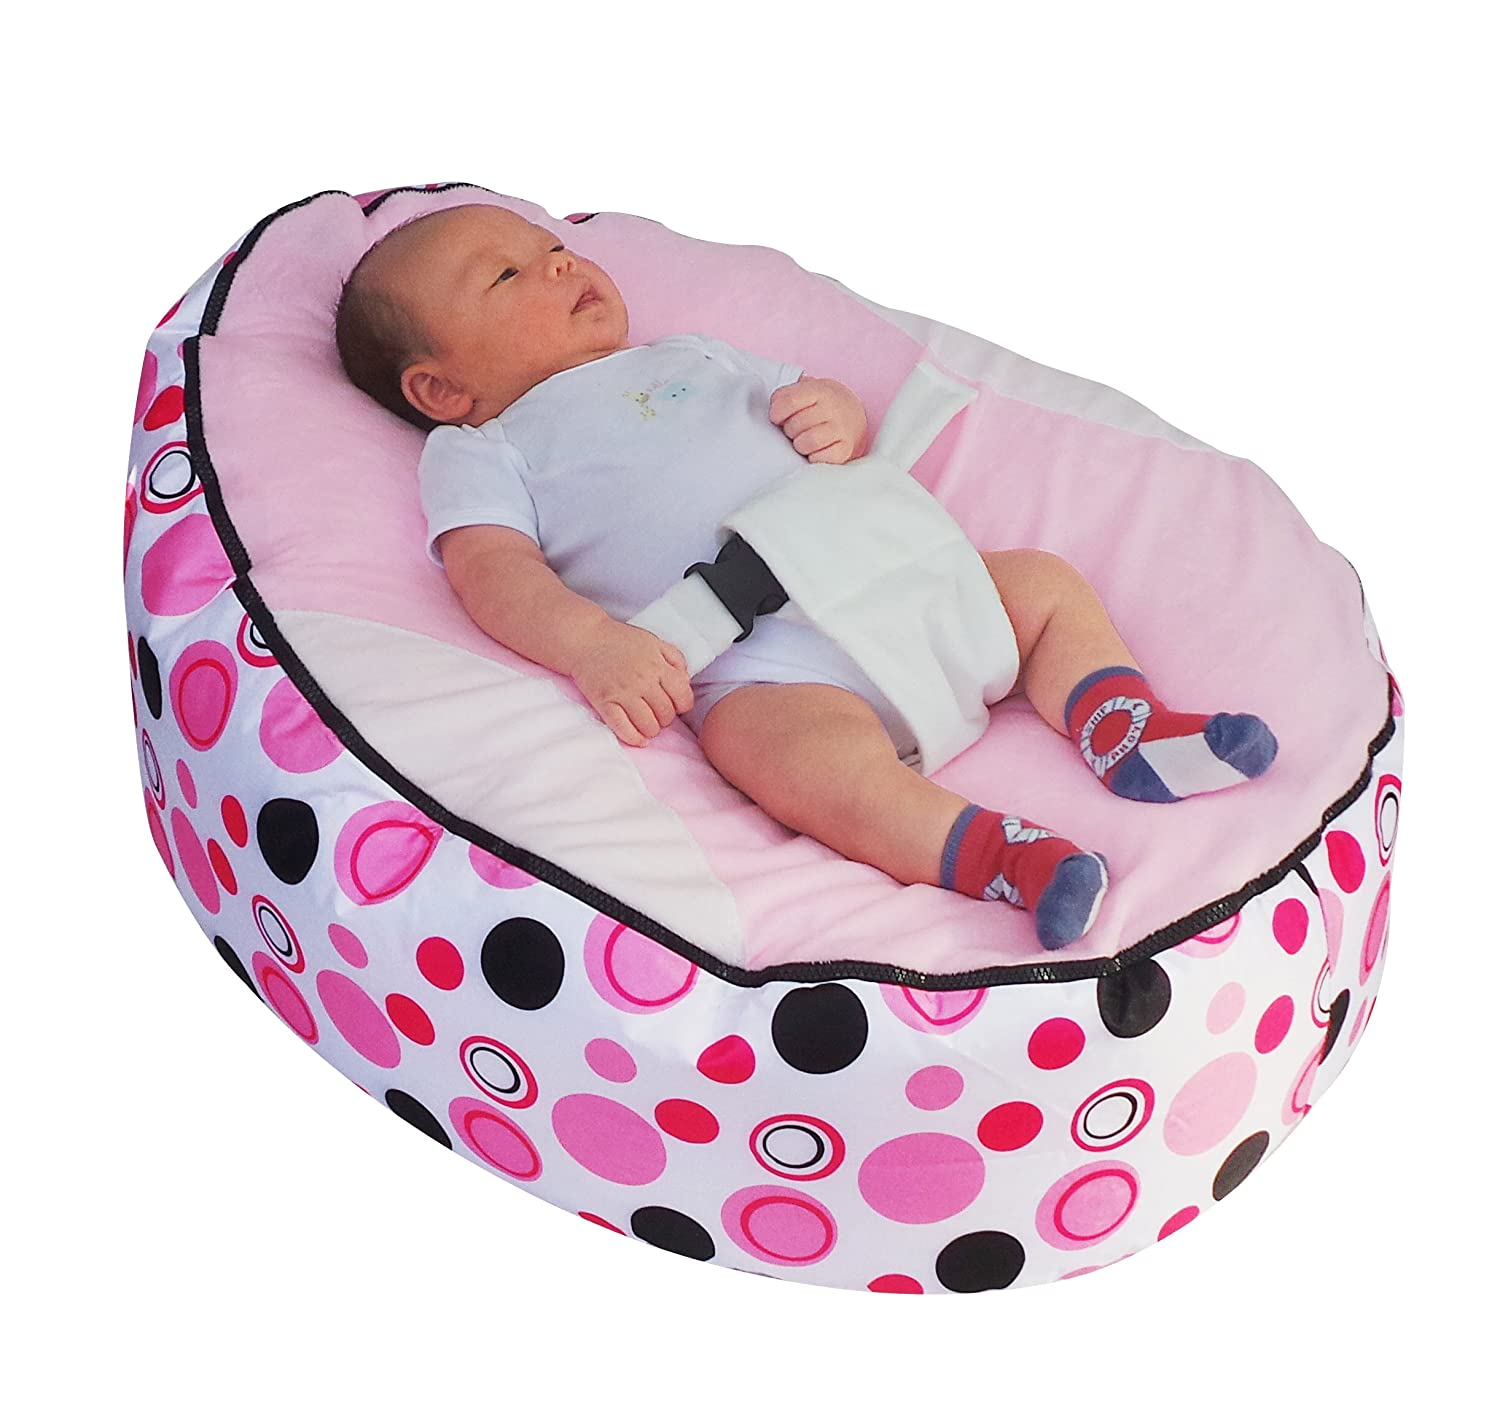 Baby Bean Bag snuggle bed bouncer with Safety Harness & 2 Removable Covers Mama Baba